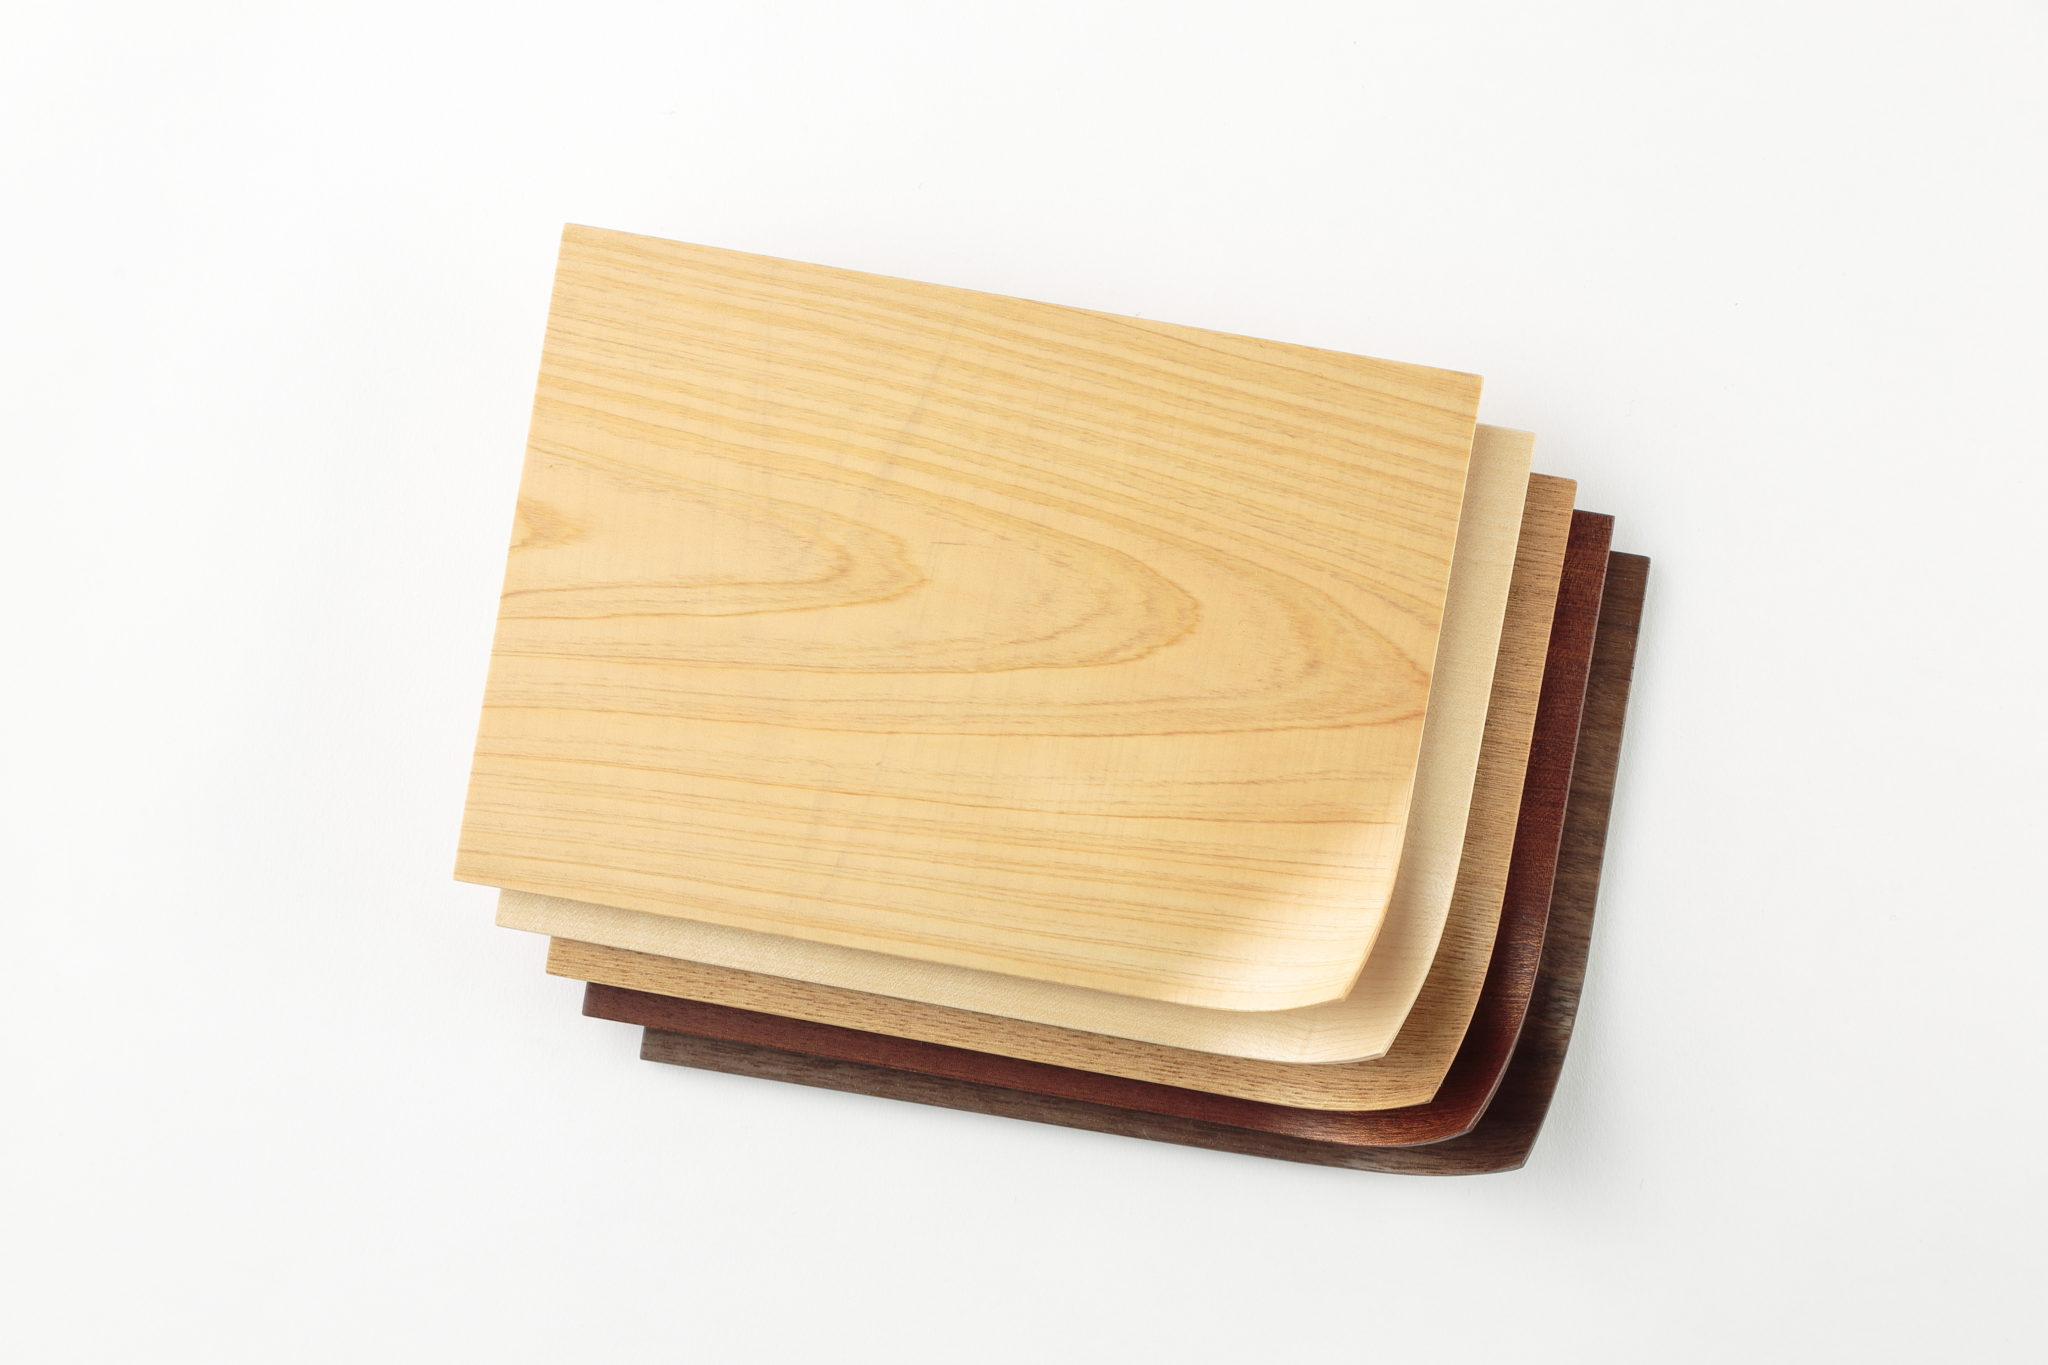 10 X Biodegradable Plate Palm Leaf Plates Party Natural & Wood Paper Plates - Best Plate 2018